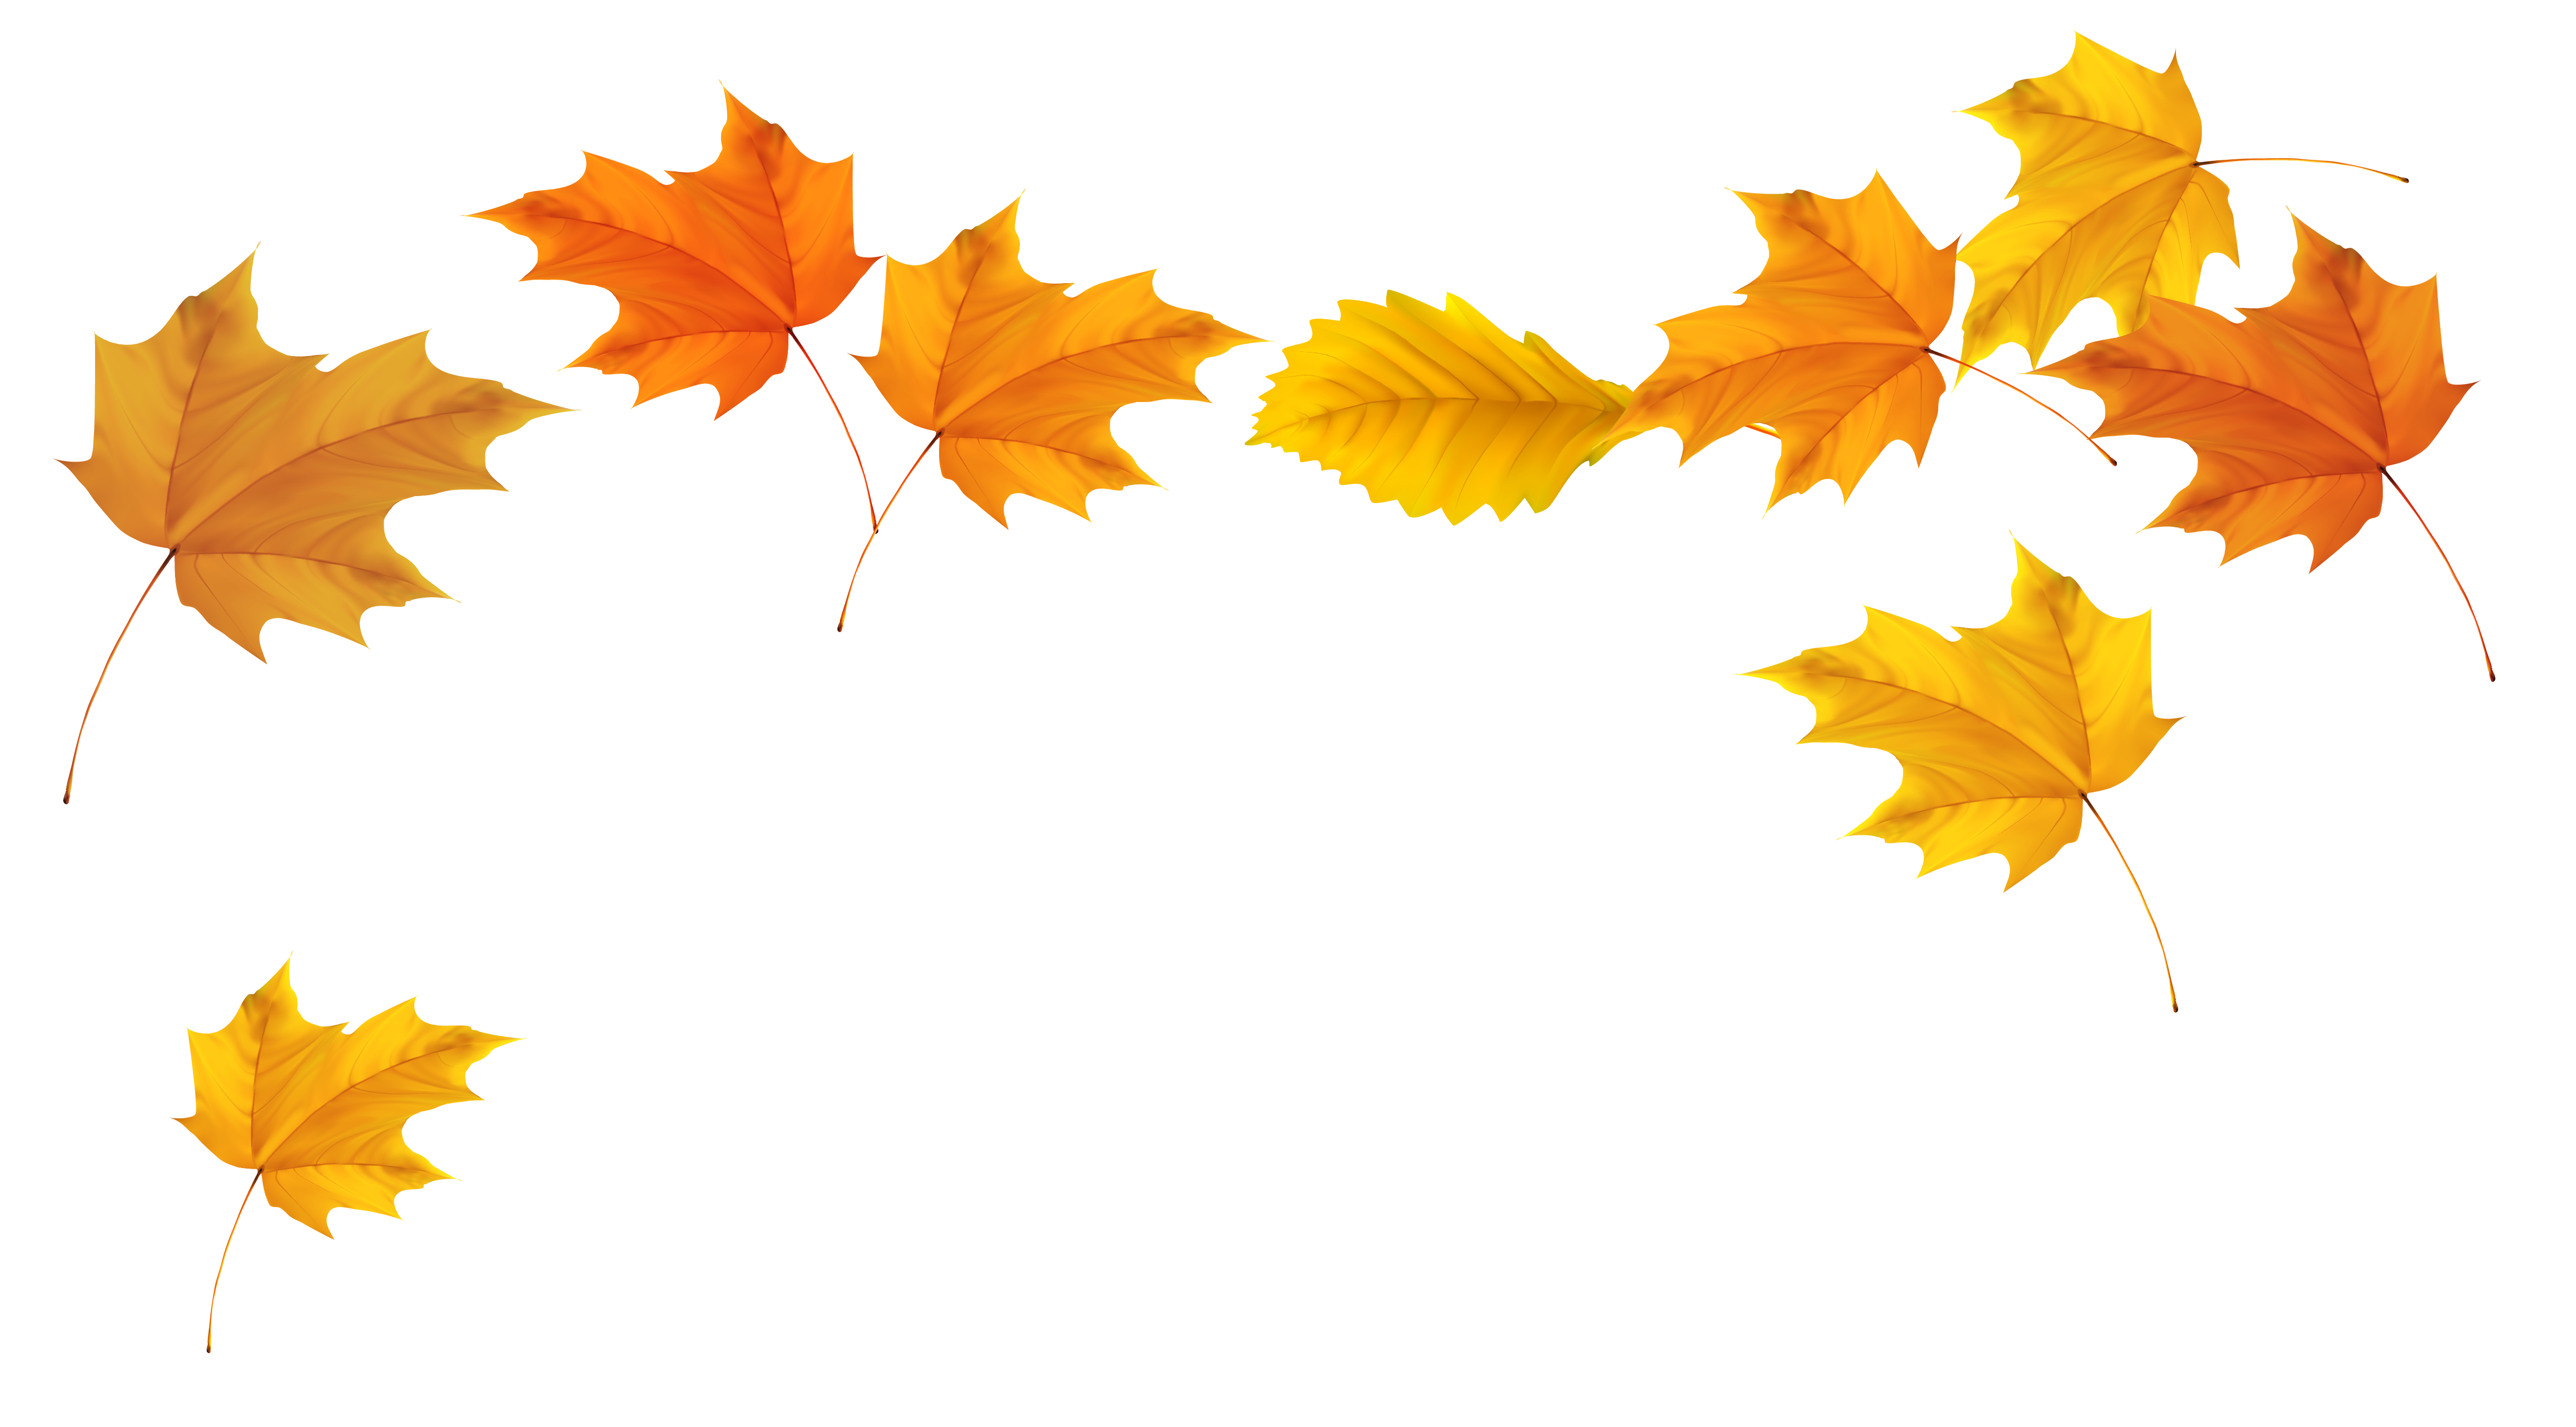 Free clipart autumn leaves jpg library Free Fall Leaves Clip Art, Download Free Clip Art, Free Clip Art on ... jpg library